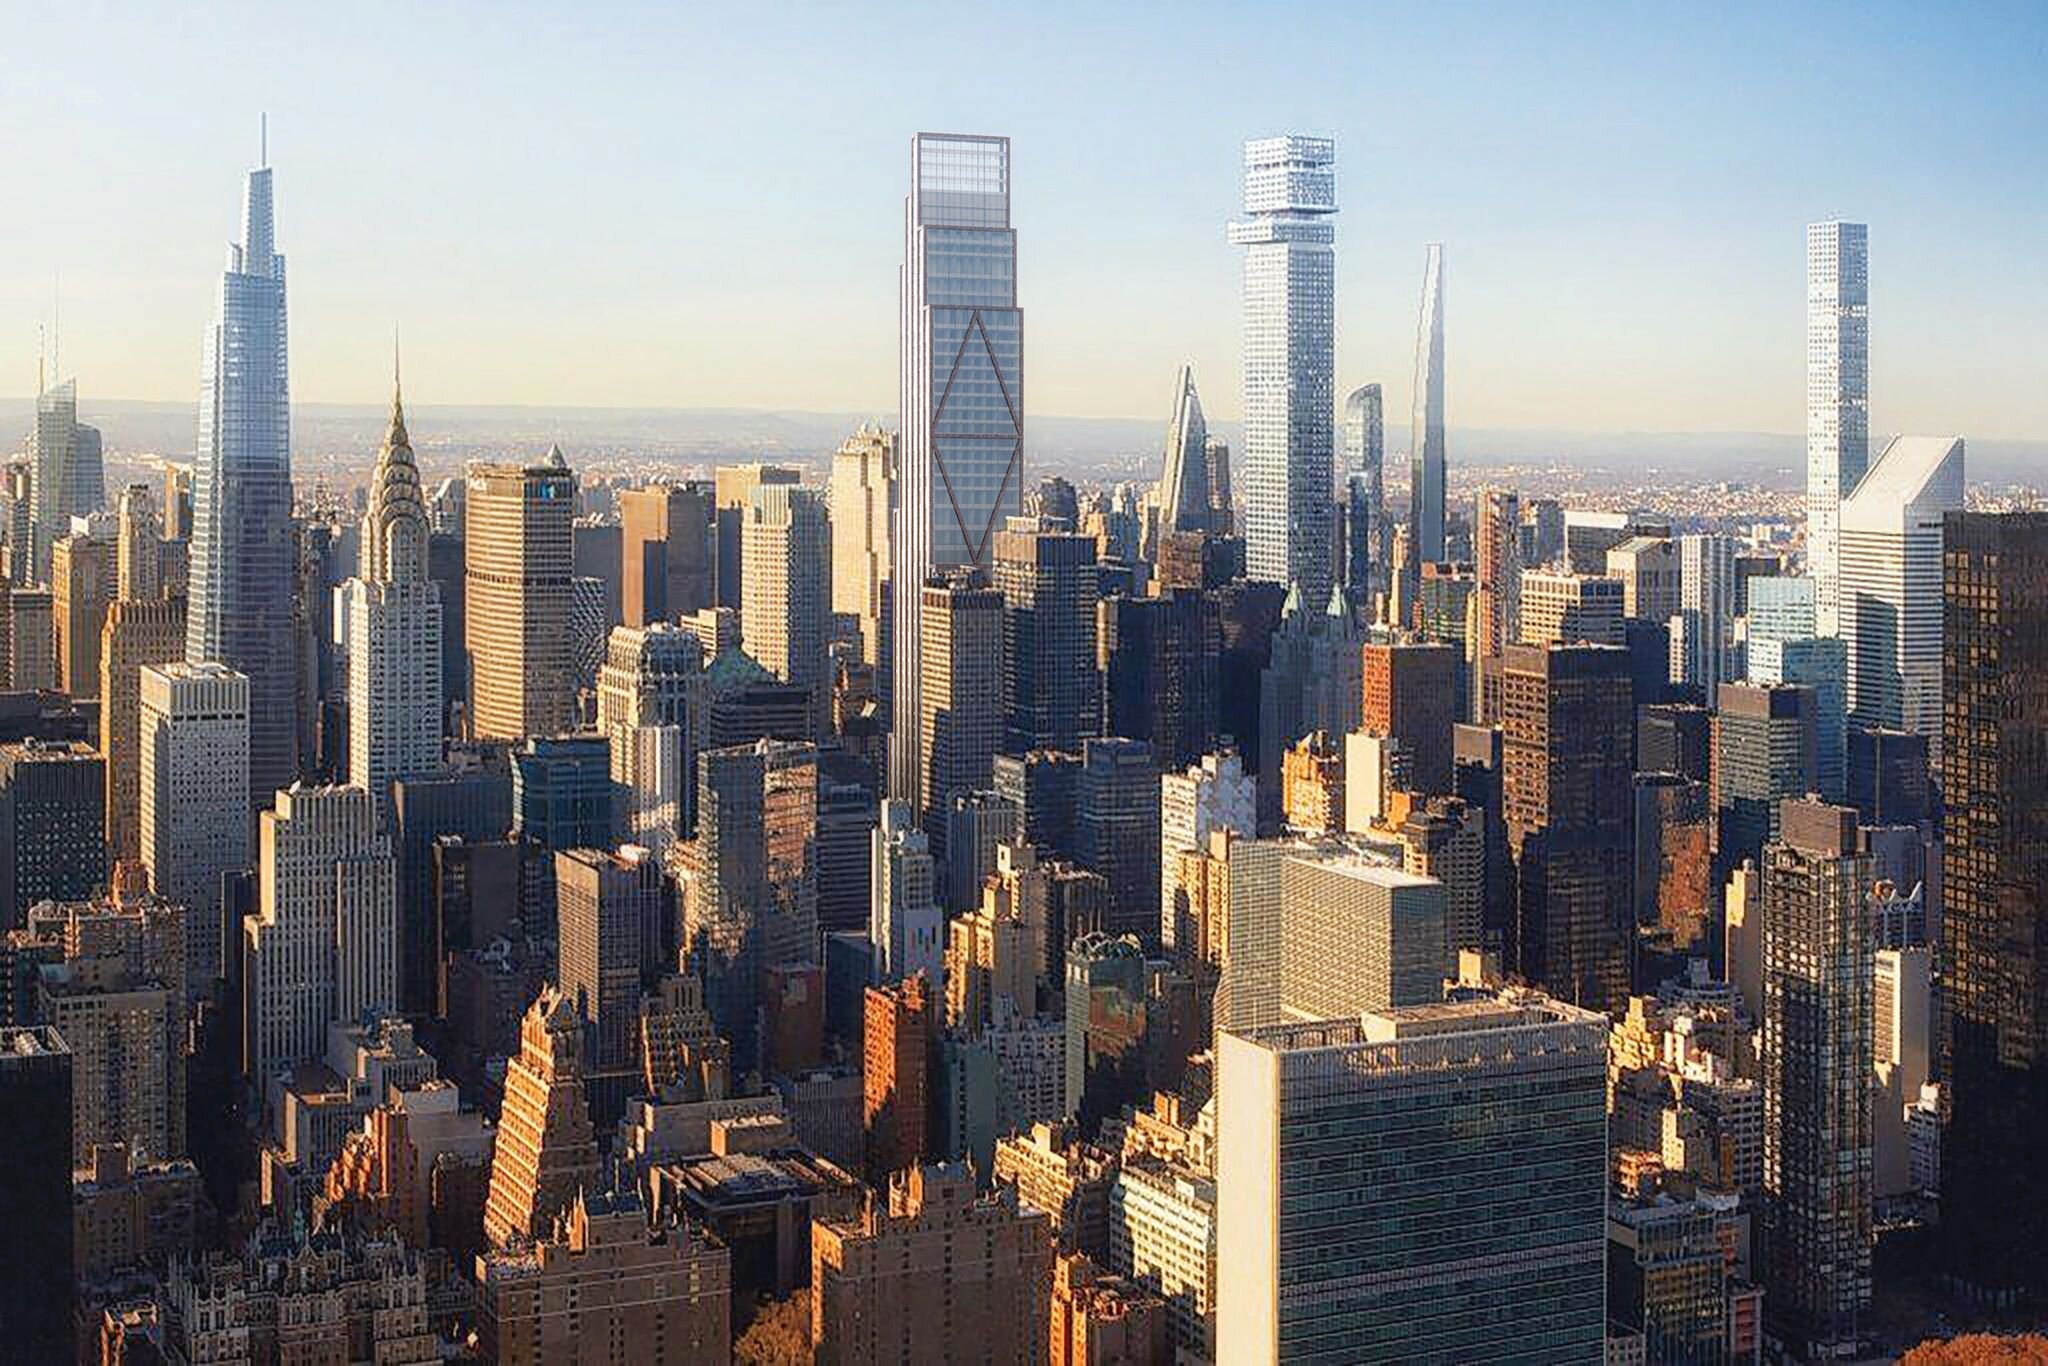 From left: One Vanderbilt, 270 Park, Tower Fifth, 111 West 57th and 432 Park.